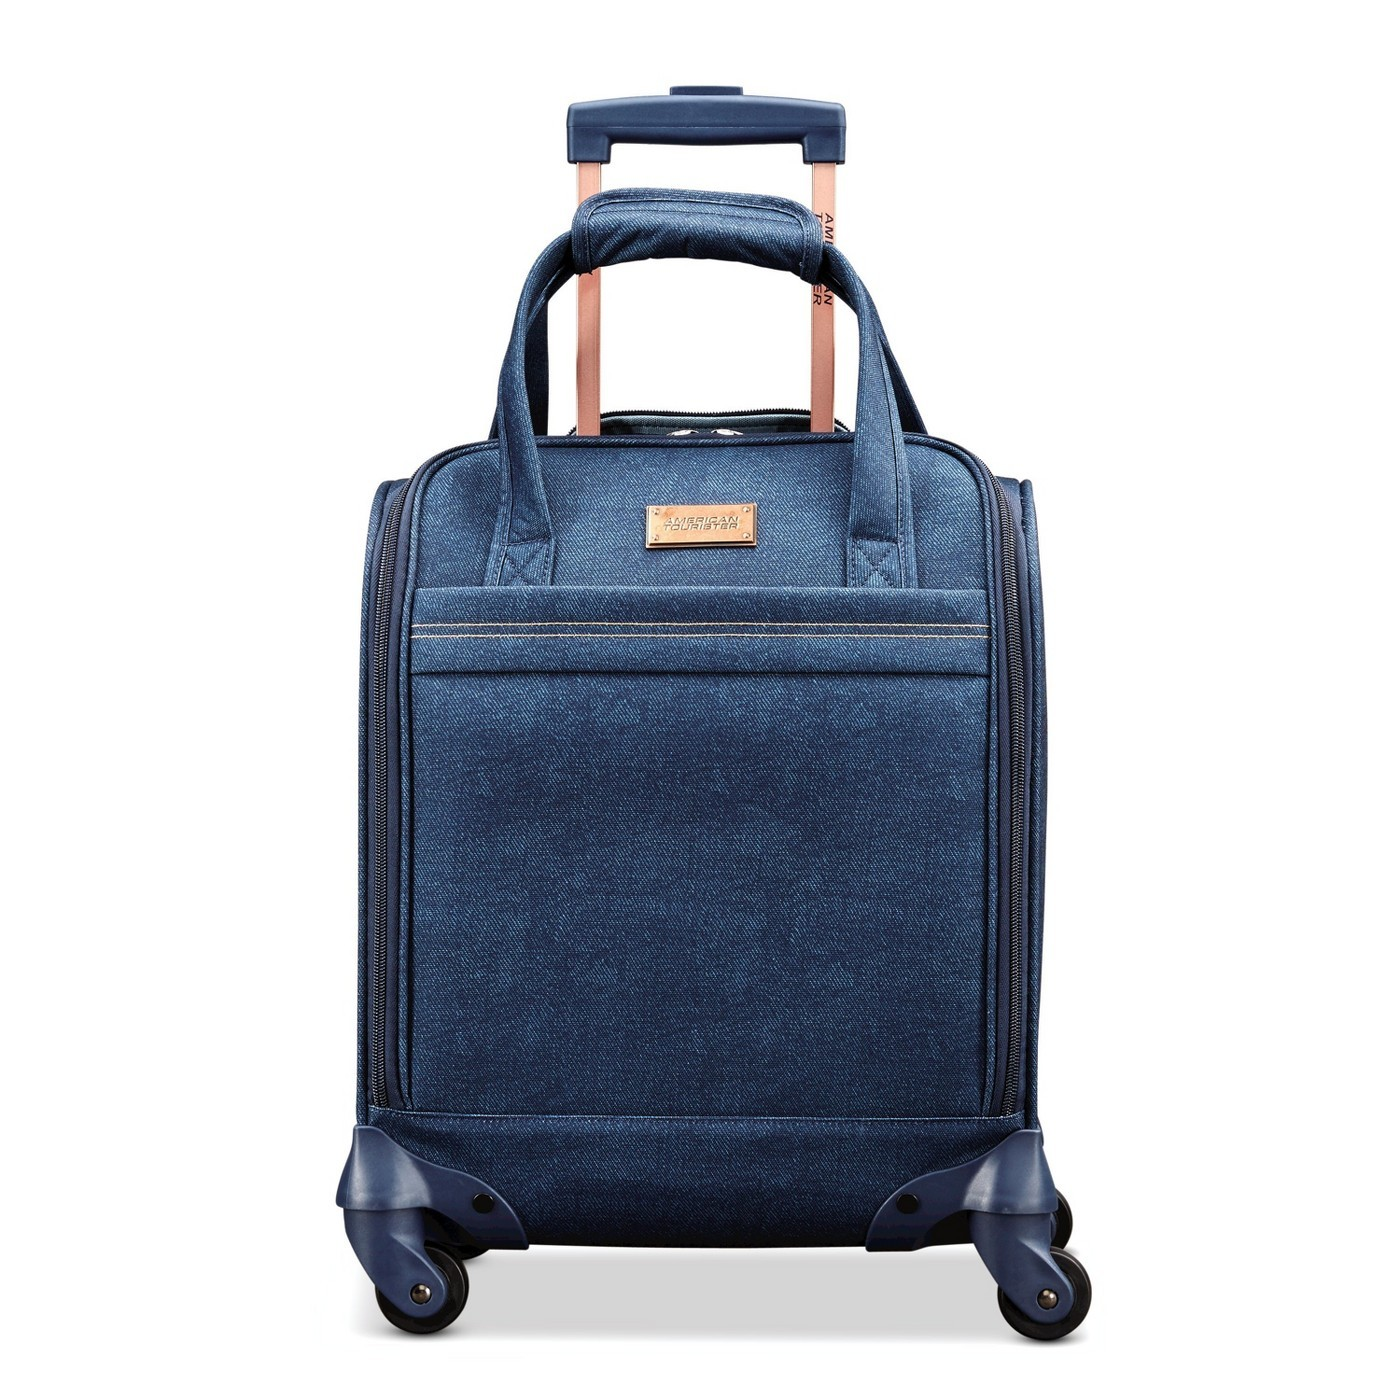 American Tourister Arabella Underseater CARY-ON 360 SPINNER Denim Blue SOLID NEW